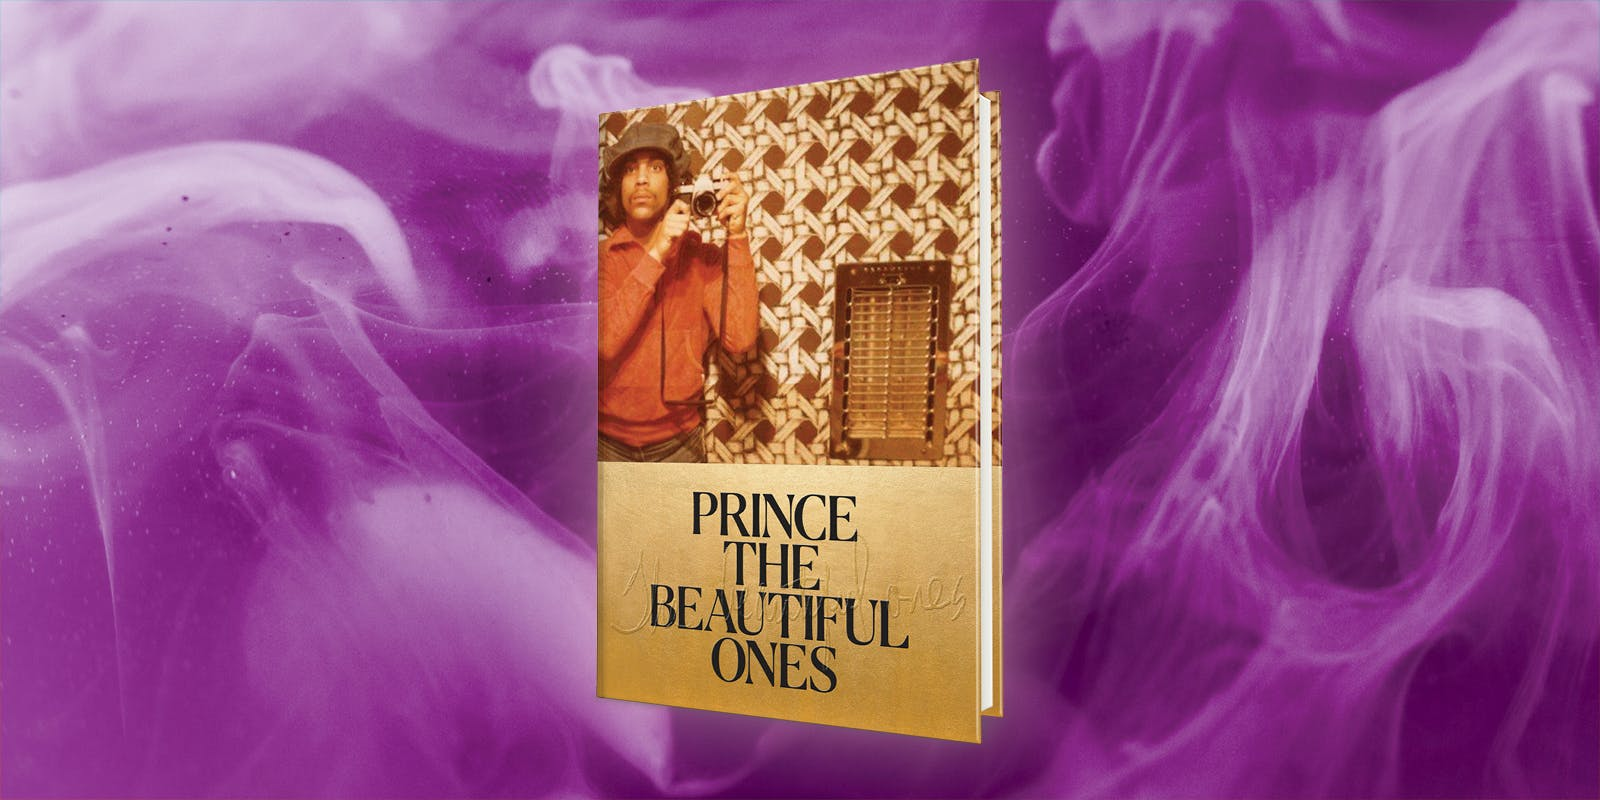 The Beautiful Ones by Prince coming this October